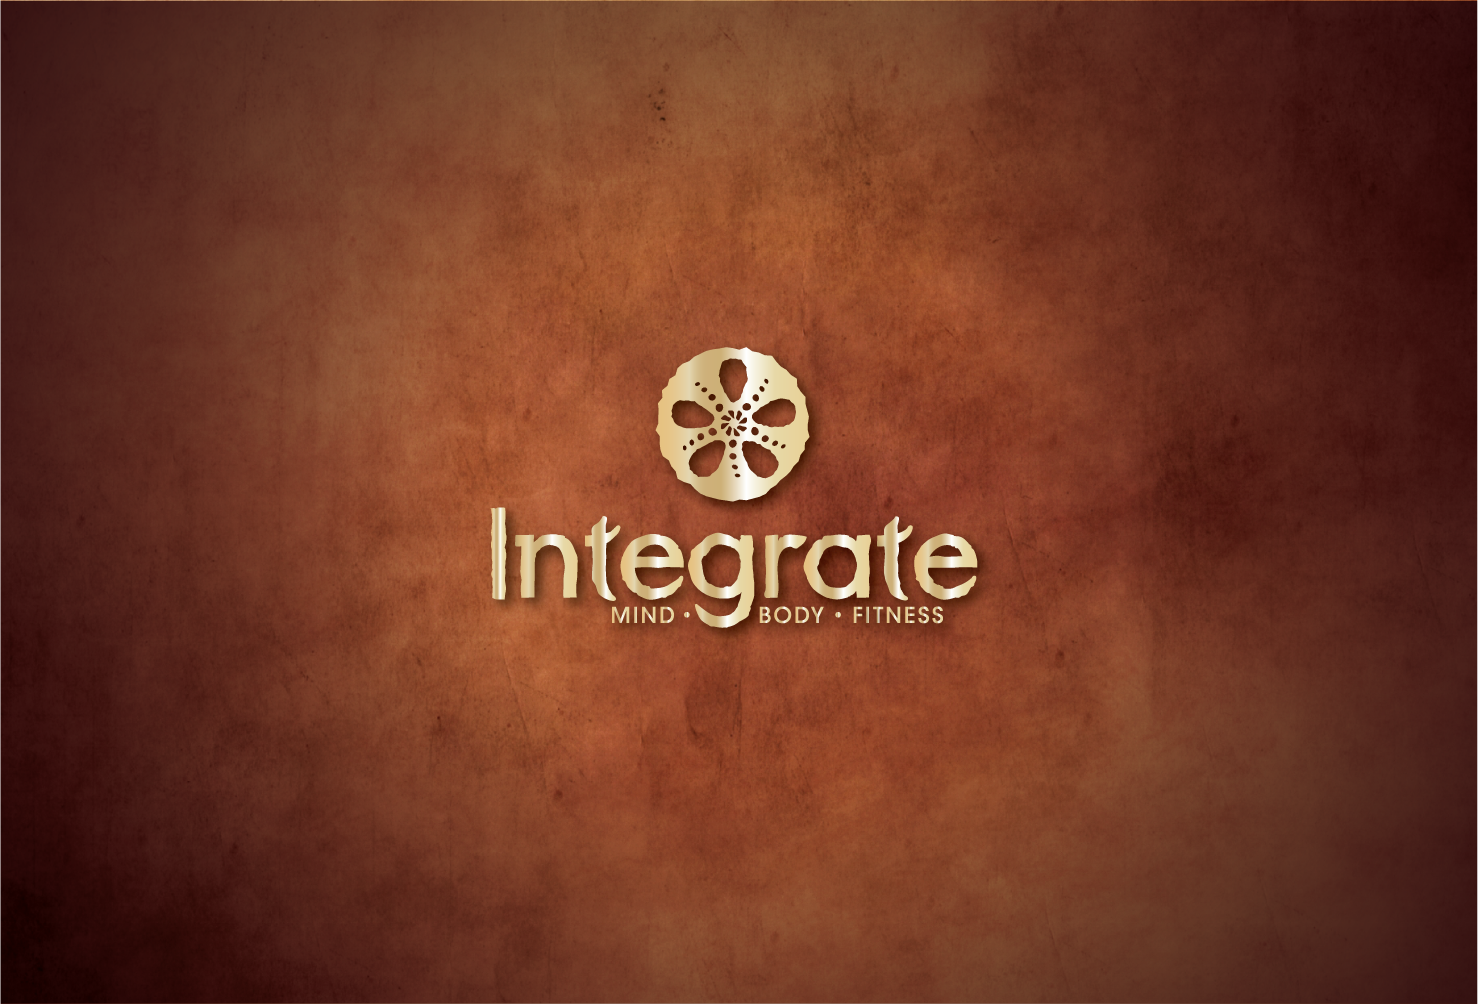 New logo for : Integrate... Mind Body Fitness  a functional training Gym/spa/wellness center